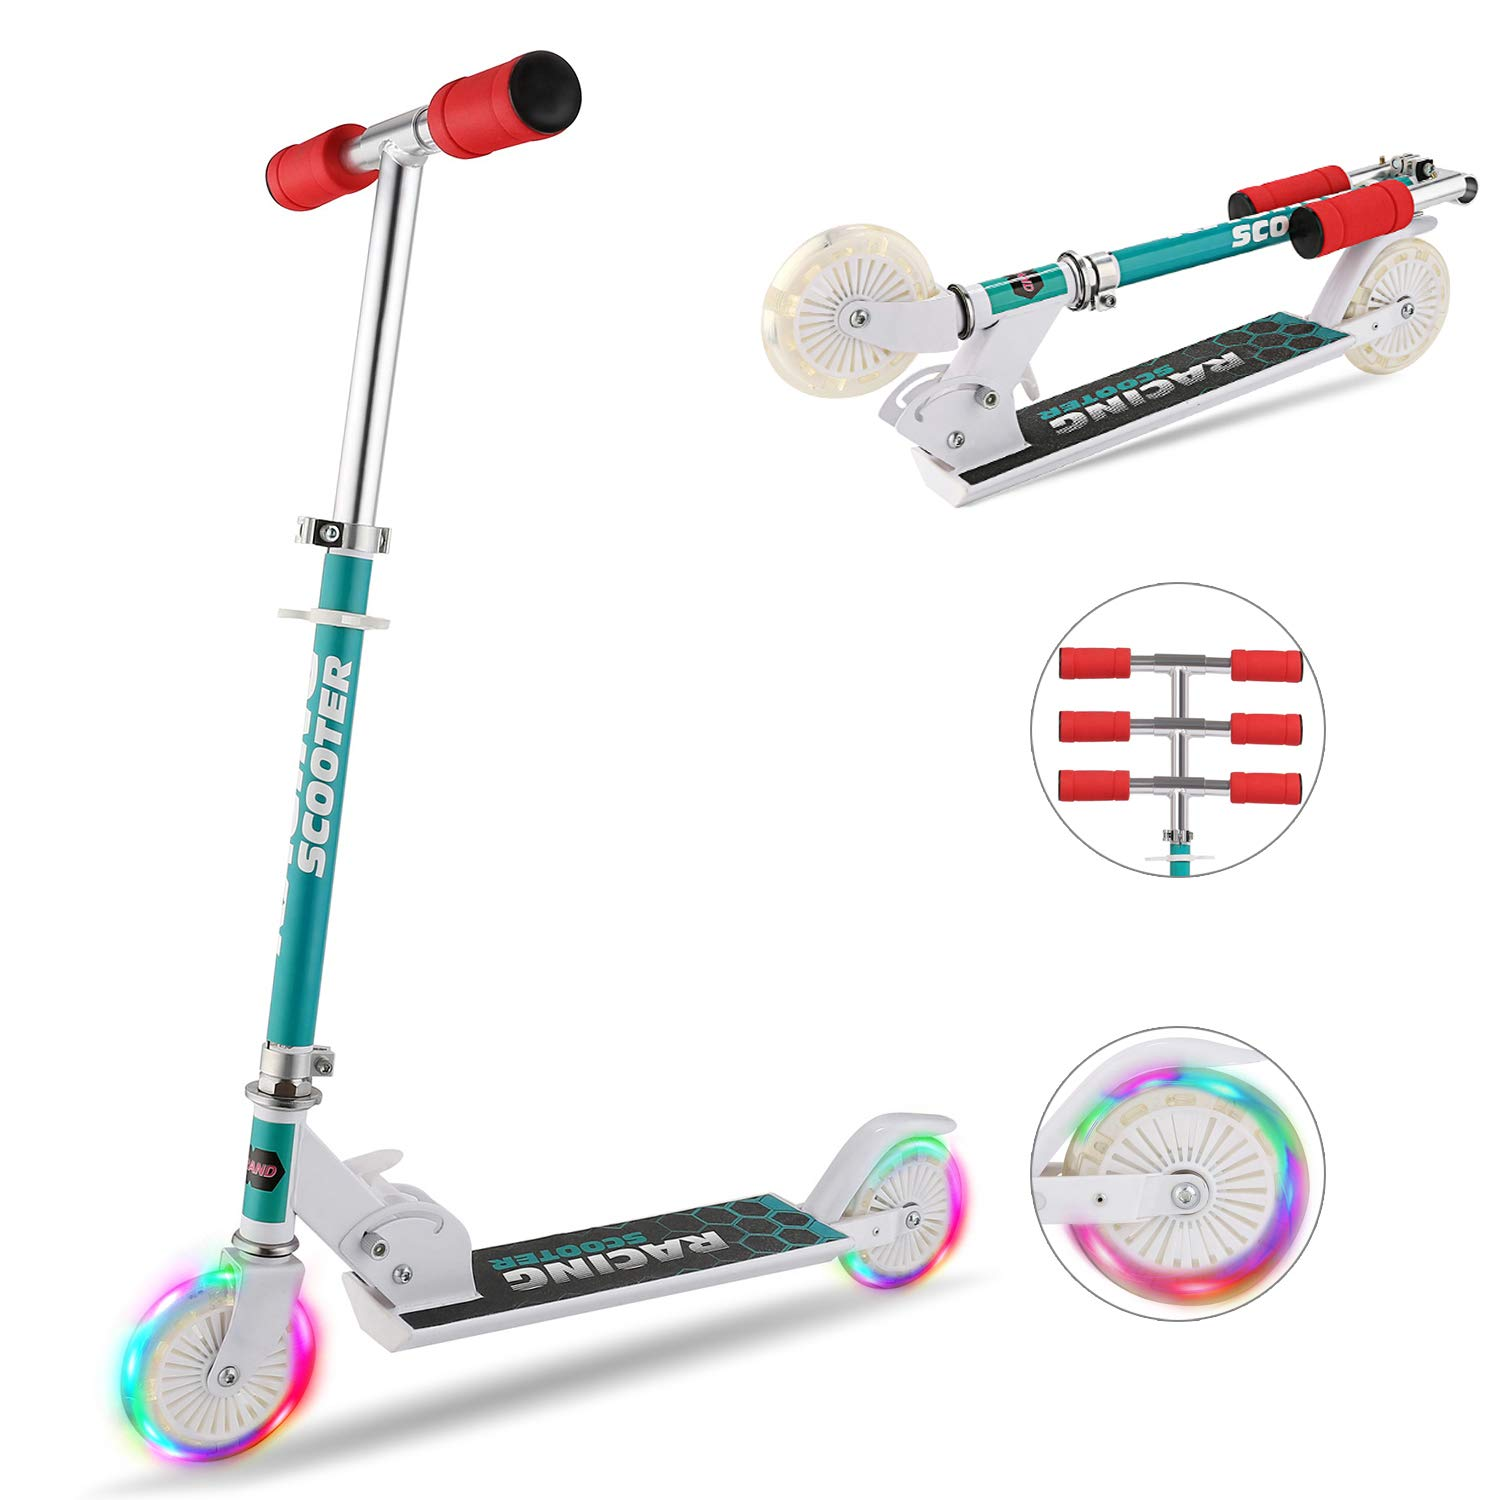 Hikole Scooter for Kids with LED Light Up Wheels, Adjustable Height Kick Scooters for Boys and Girls, Rear Fender Break|5lb Lightweight Folding Kids Scooter, 110lb Weight Capacity